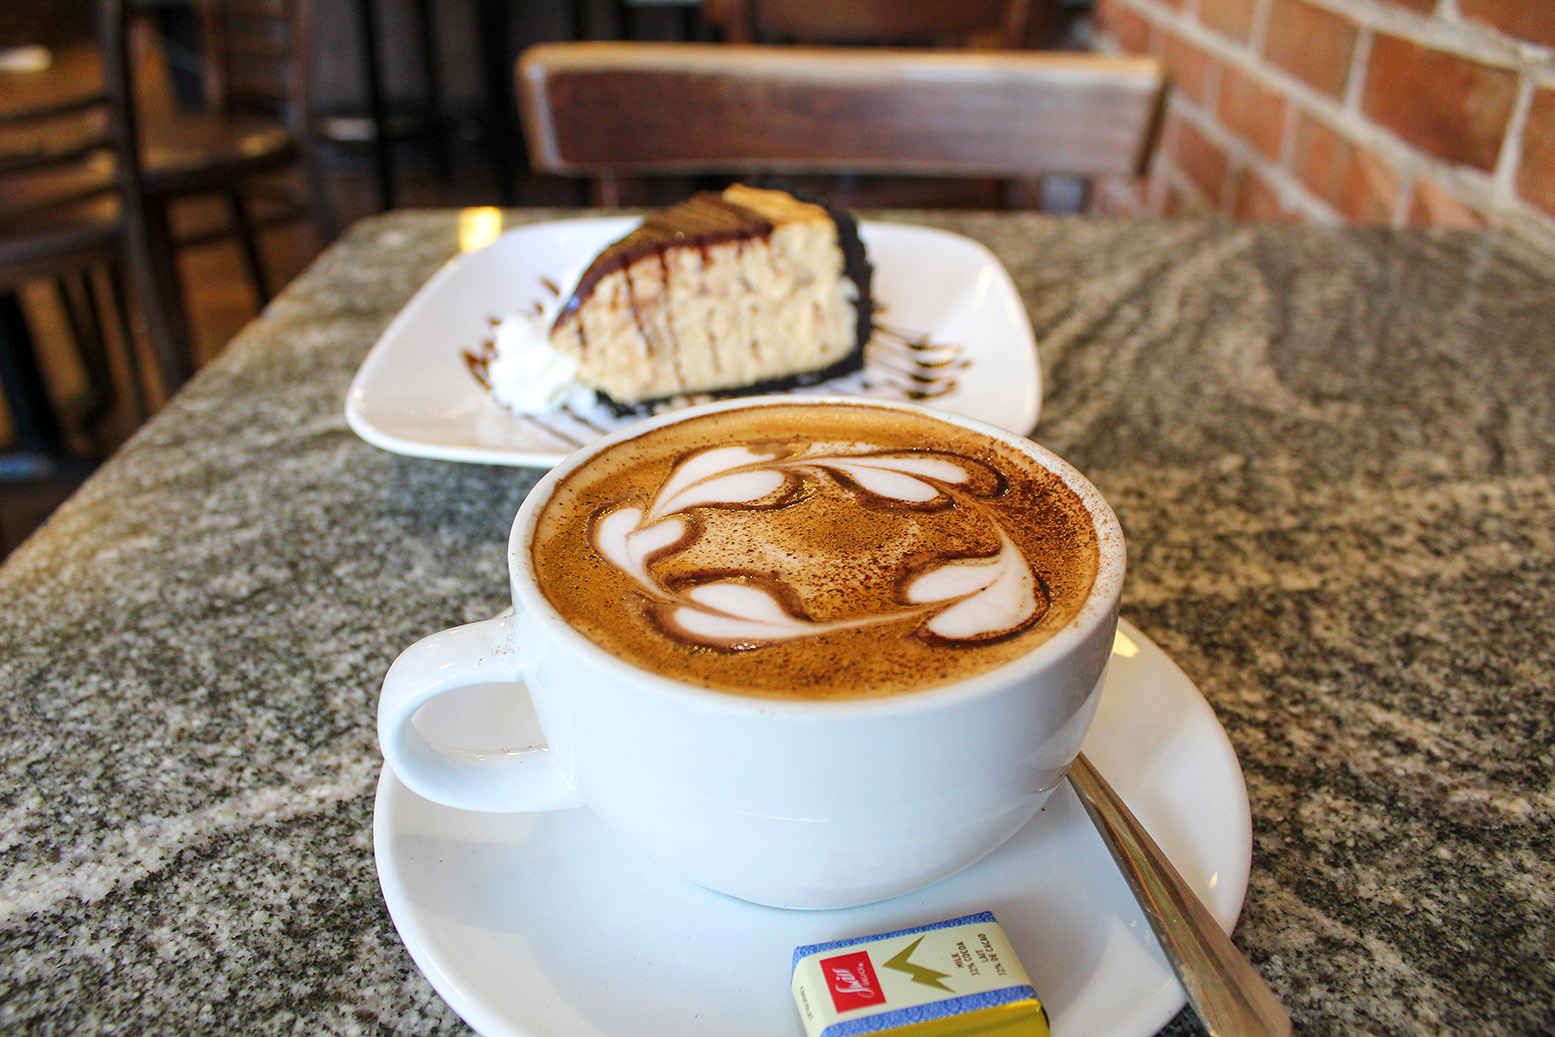 Photo of hearts latte art with a slice of dessert in background